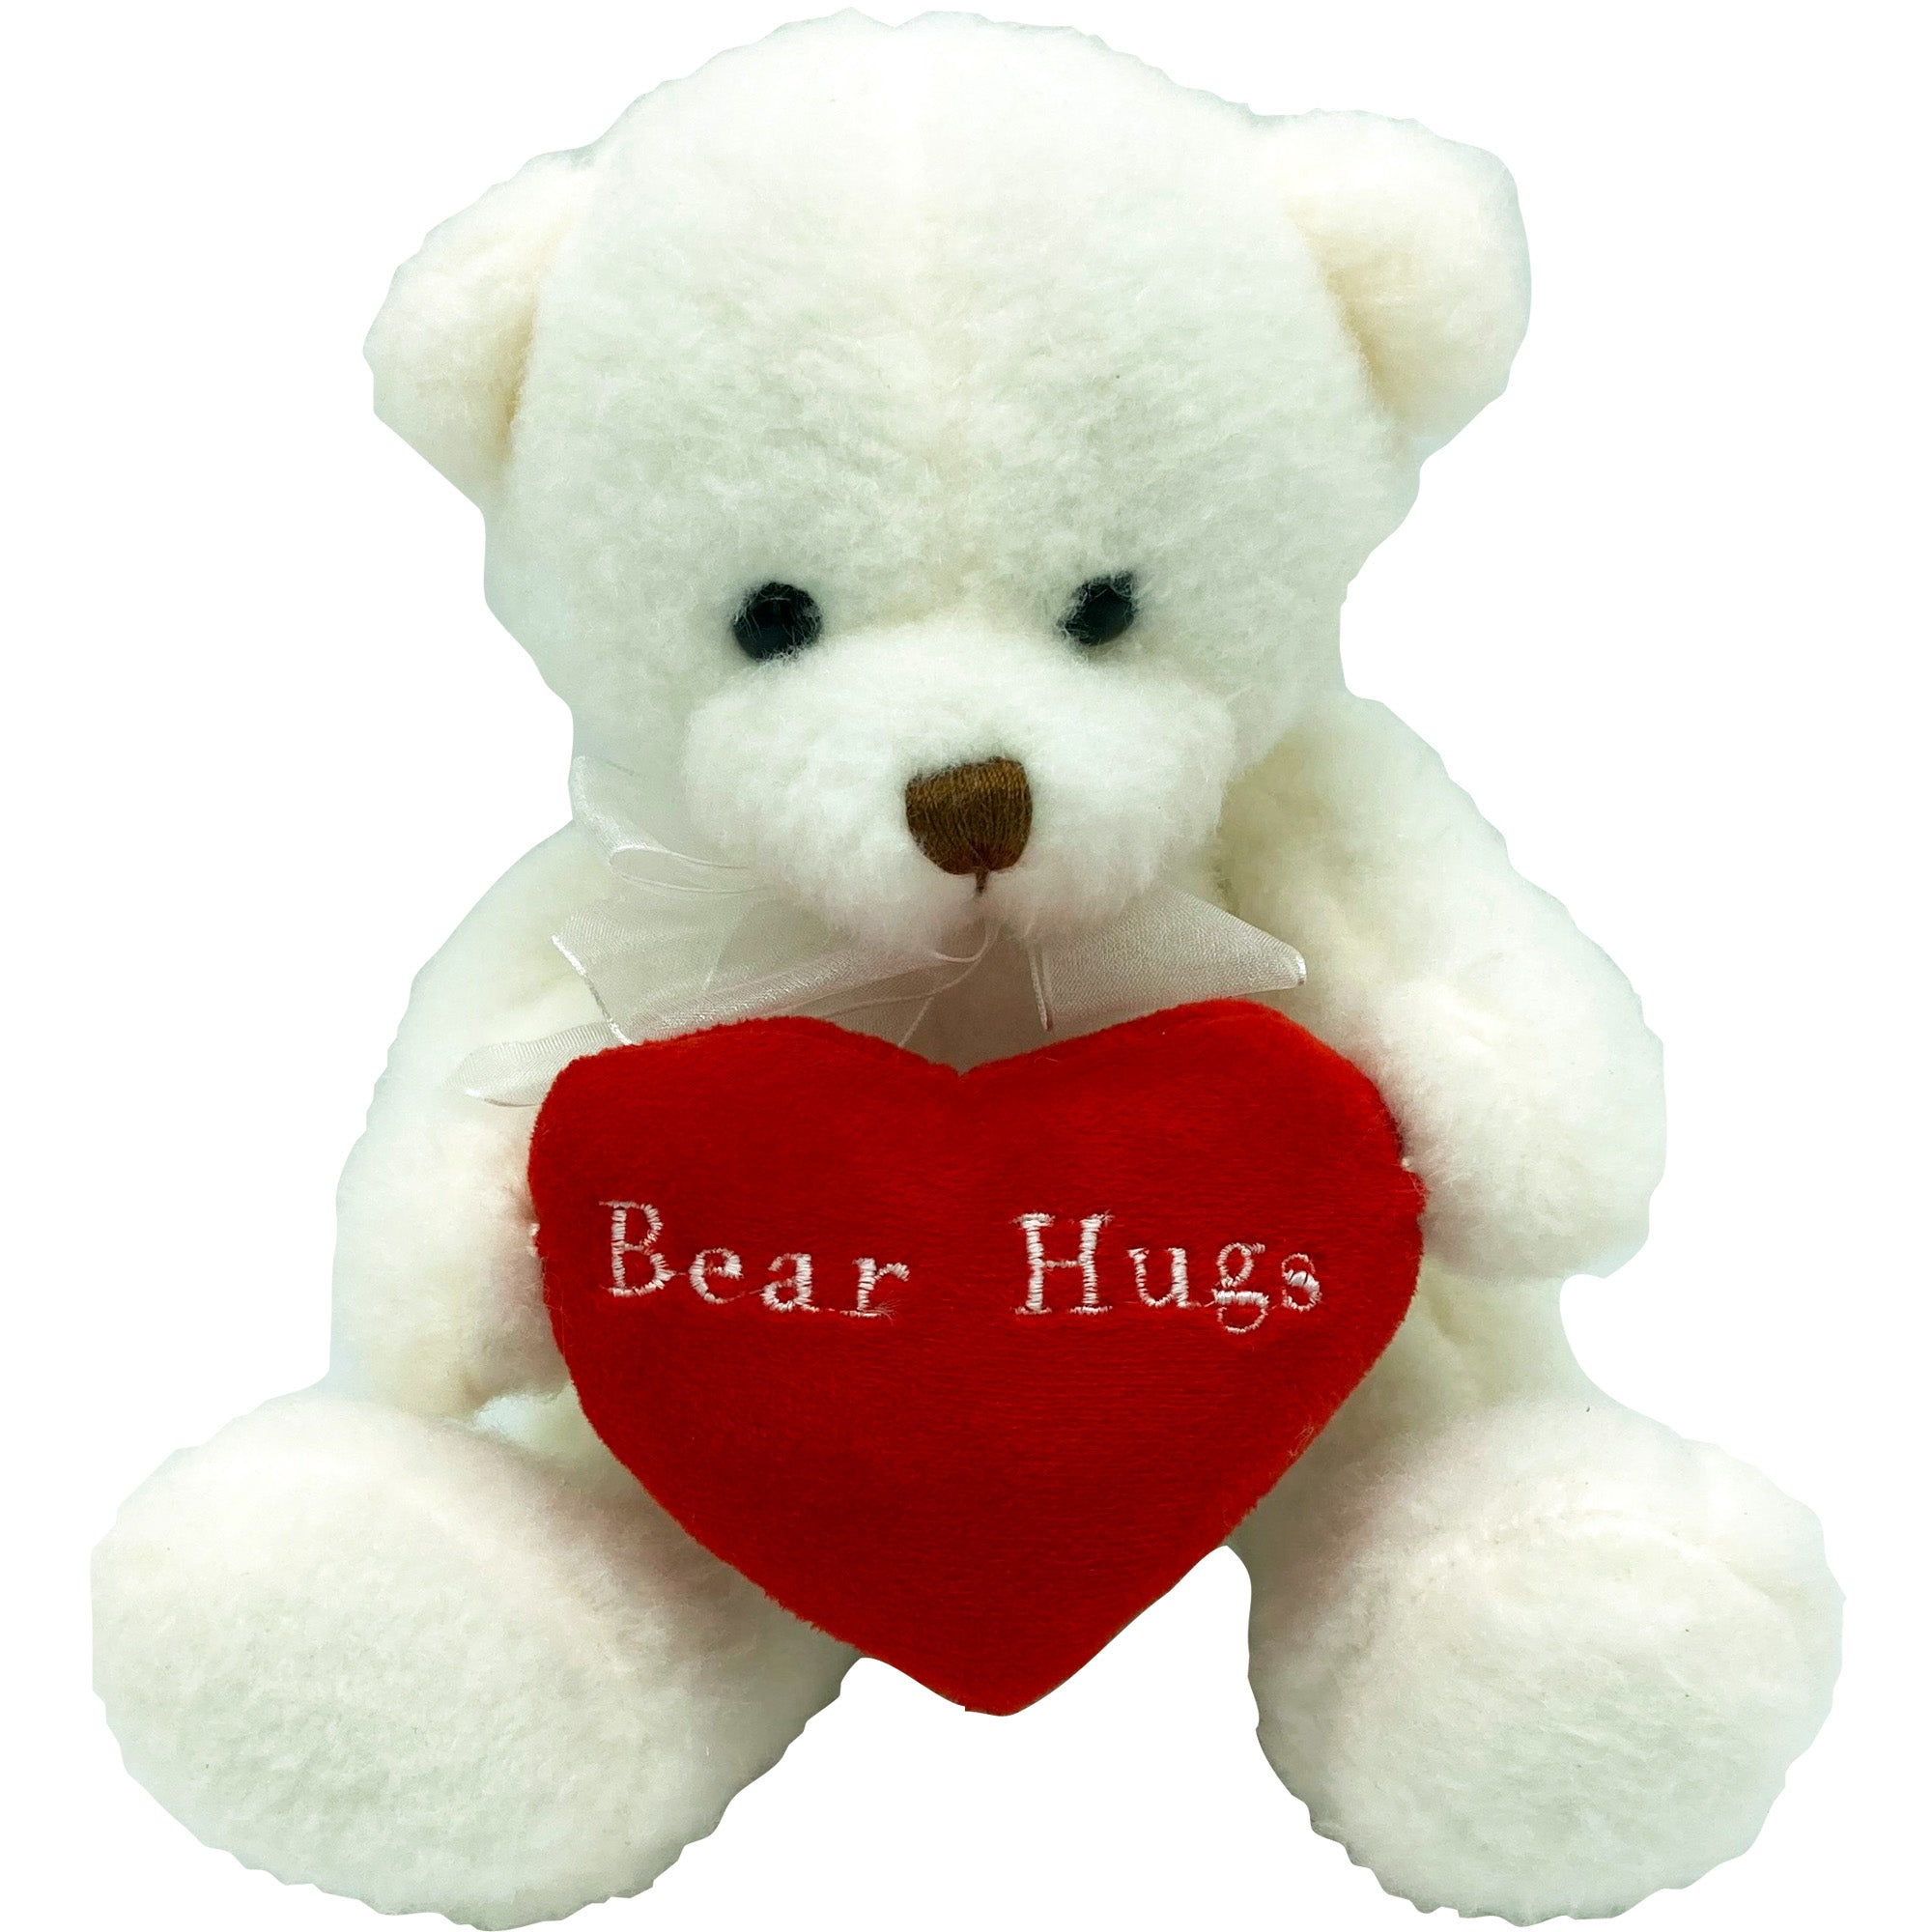 Bear Hugs Plush Bear (20cmH)